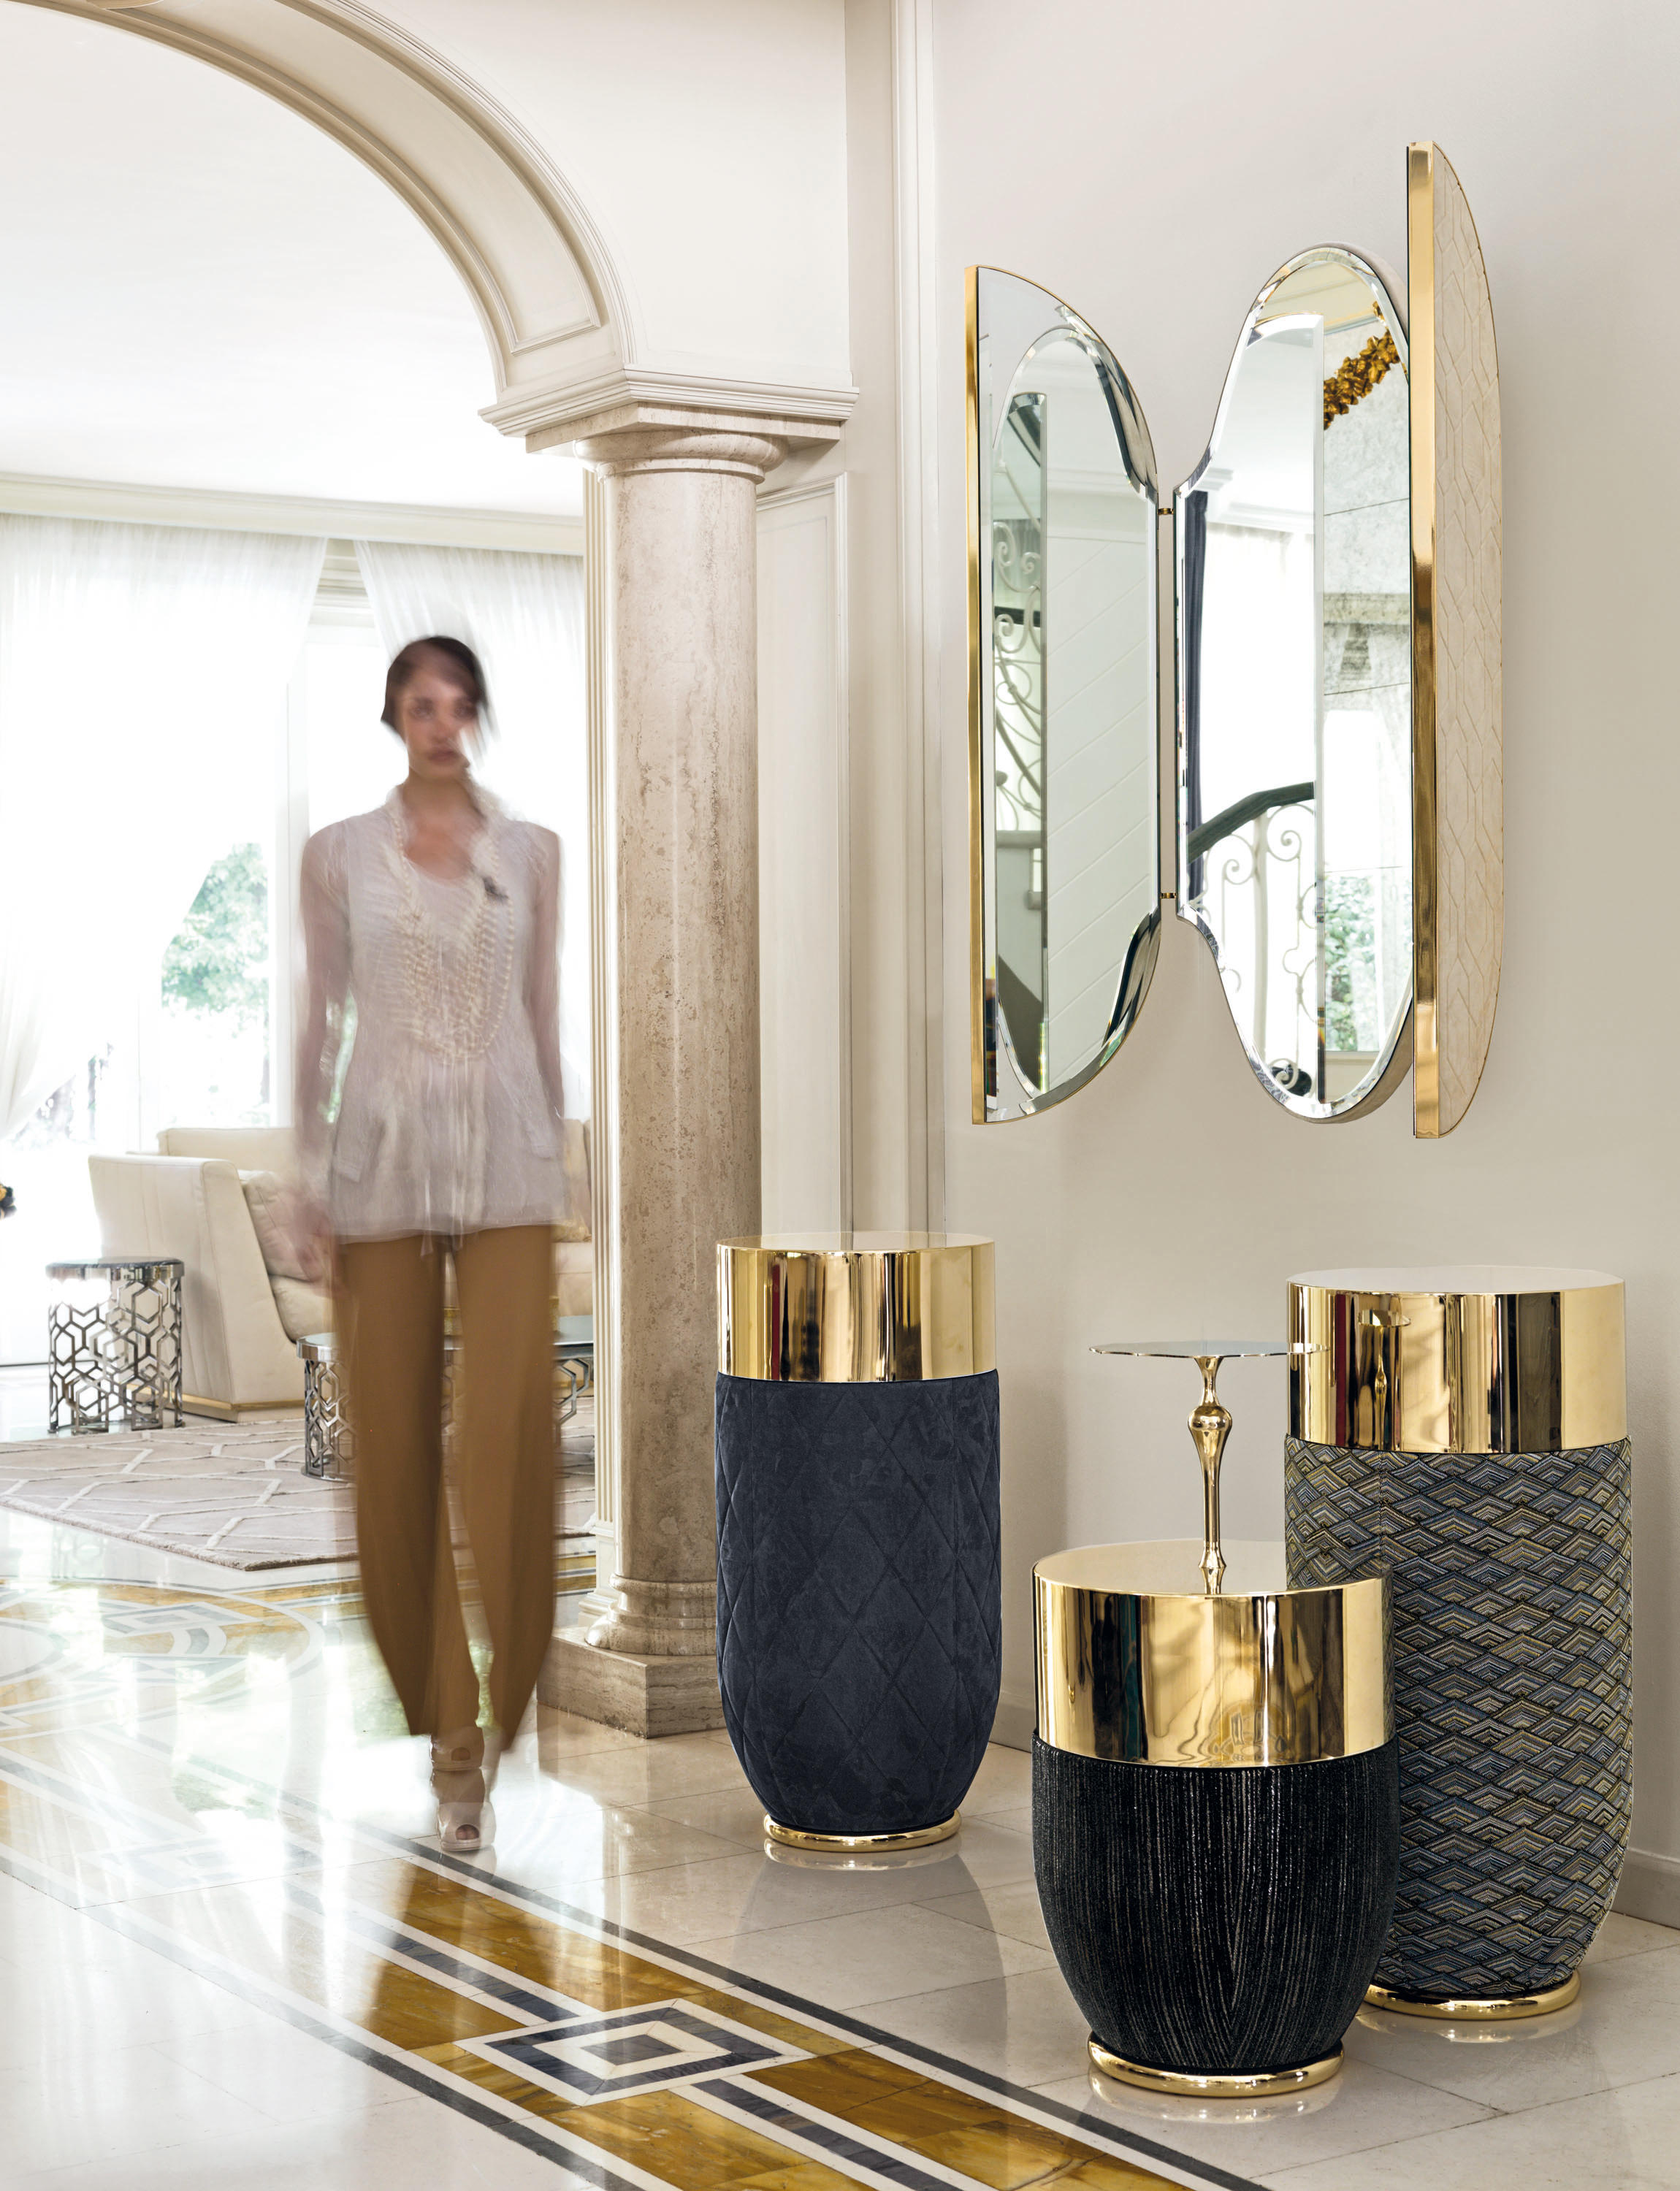 Mirage By Longhi S.p.a. | Mirrors · Mirage By Longhi S.p.a. | Mirrors ...